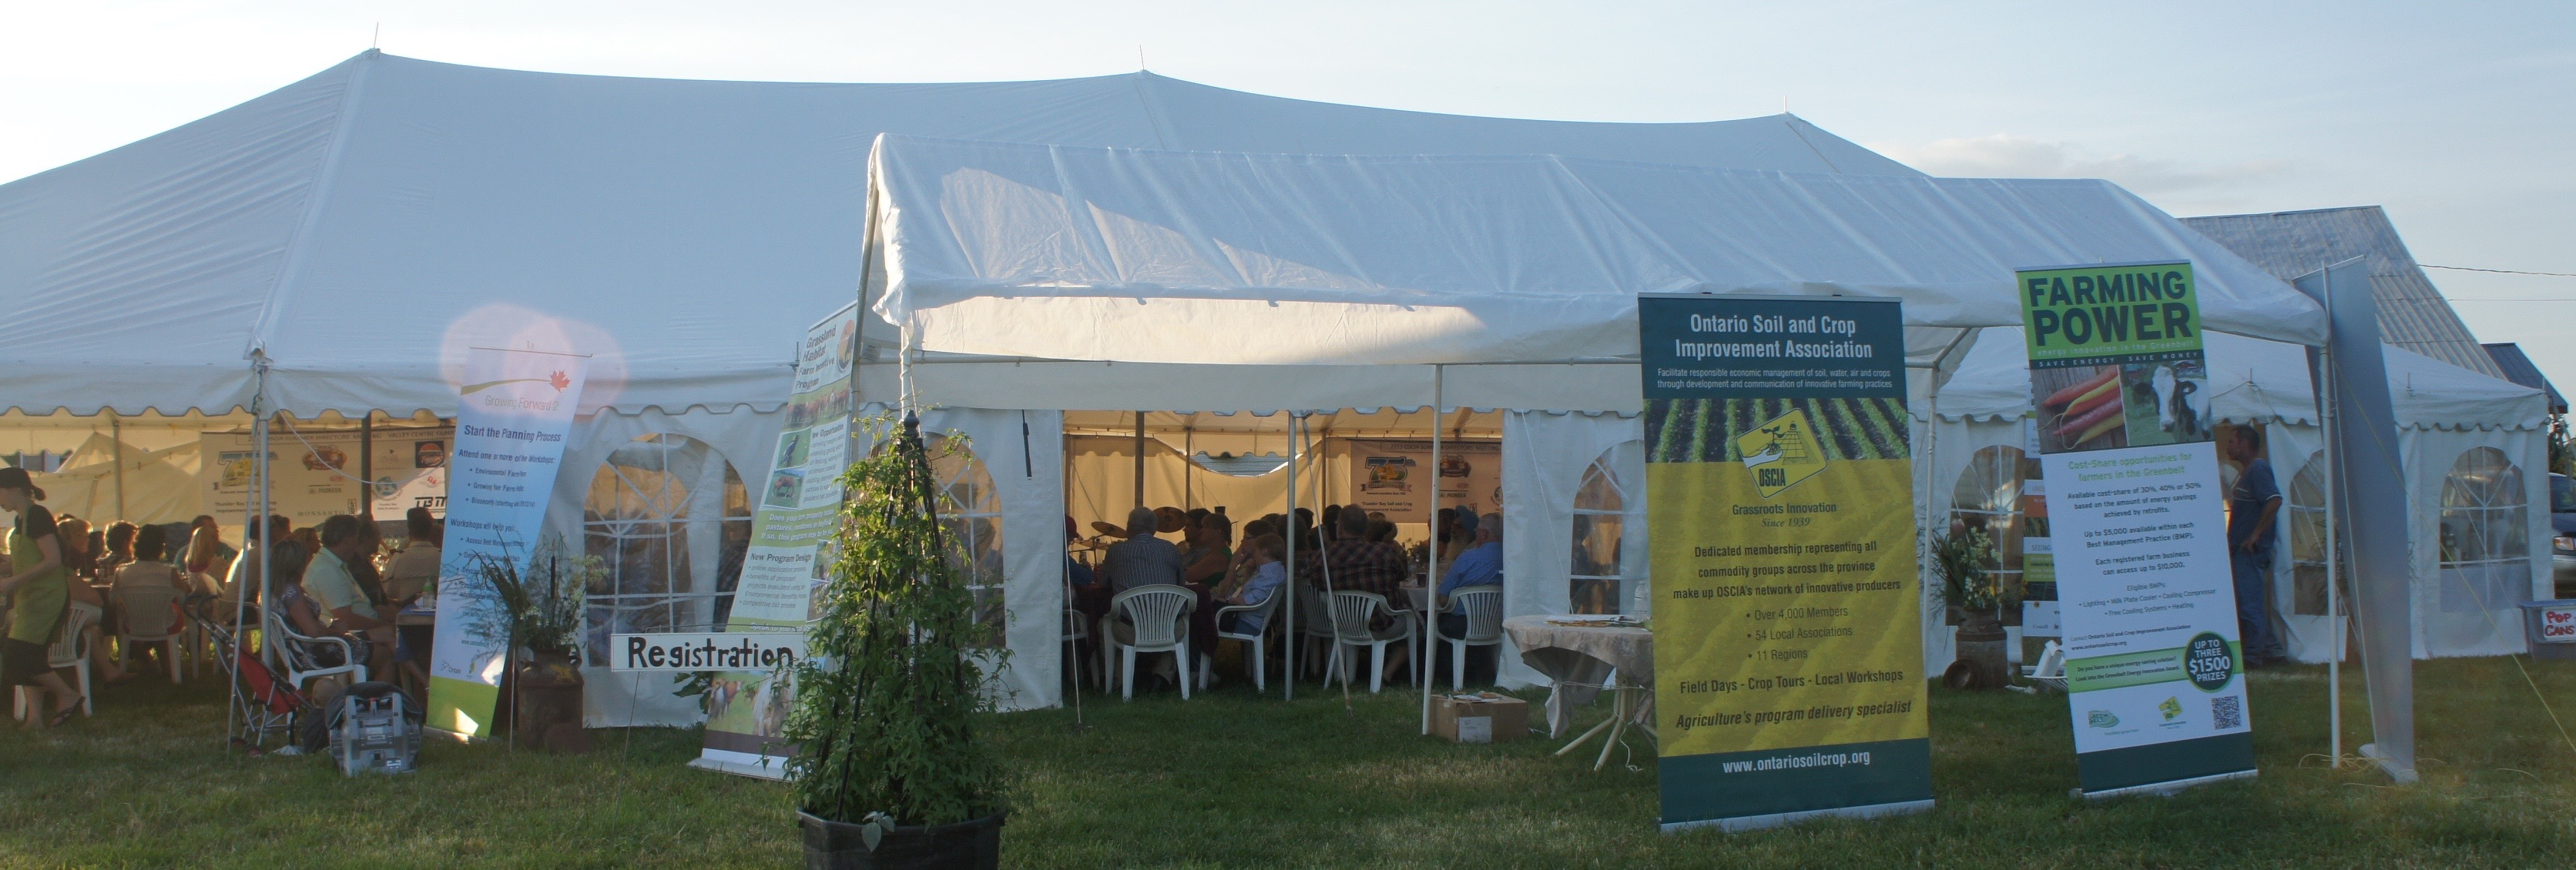 Summer meeting dinner tent and OSCIA displays